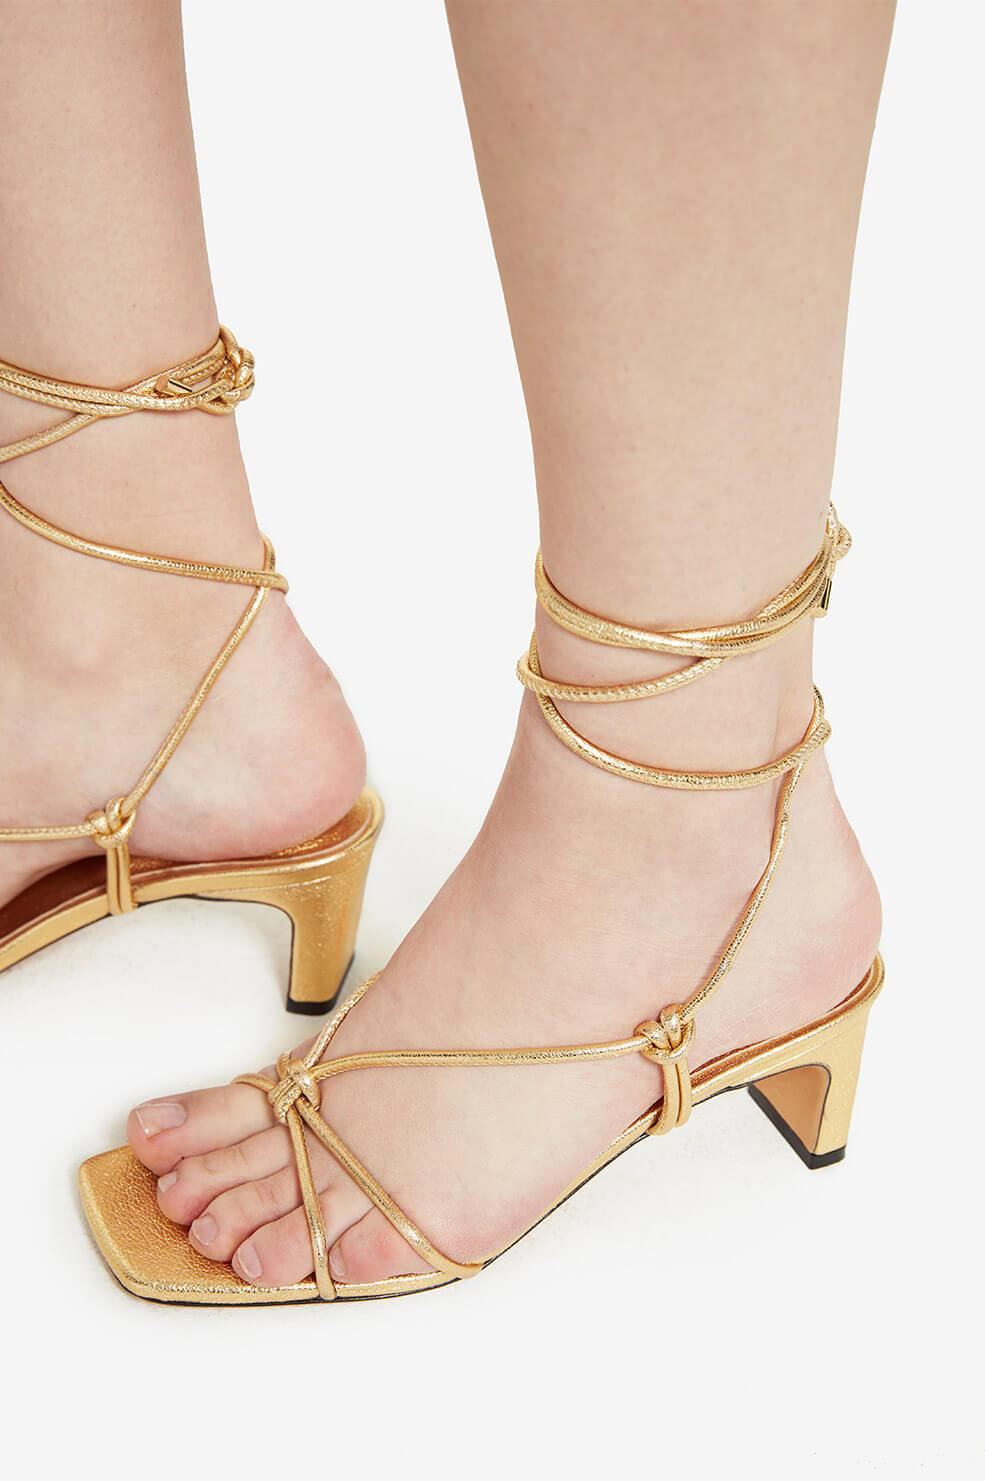 Anine Bing | Graham Sandals - Gold